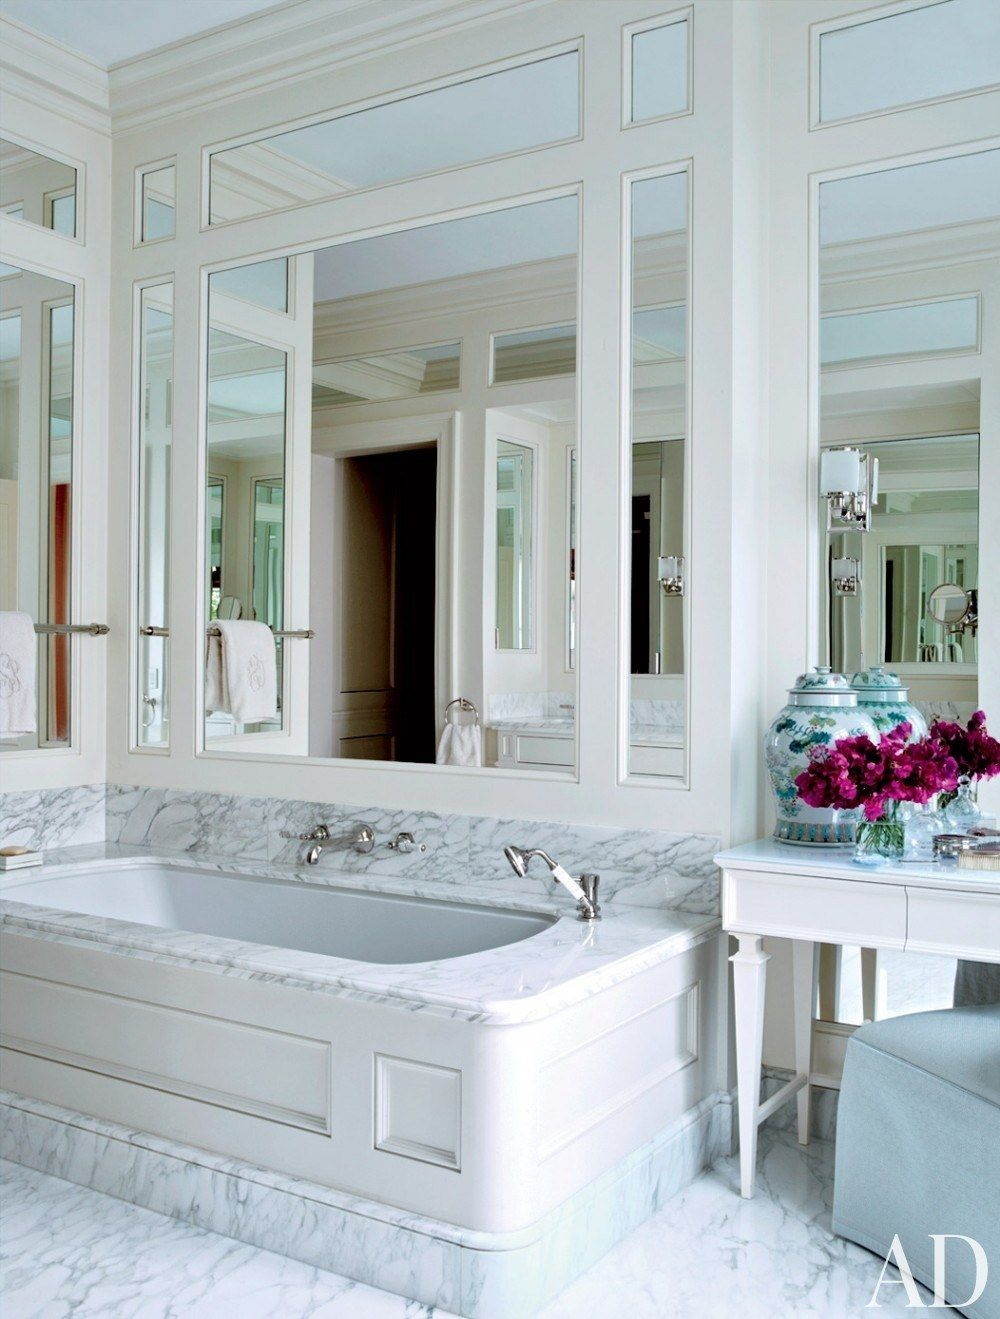 Can You Guess the Most Popular Home Renovation Projects by State ...